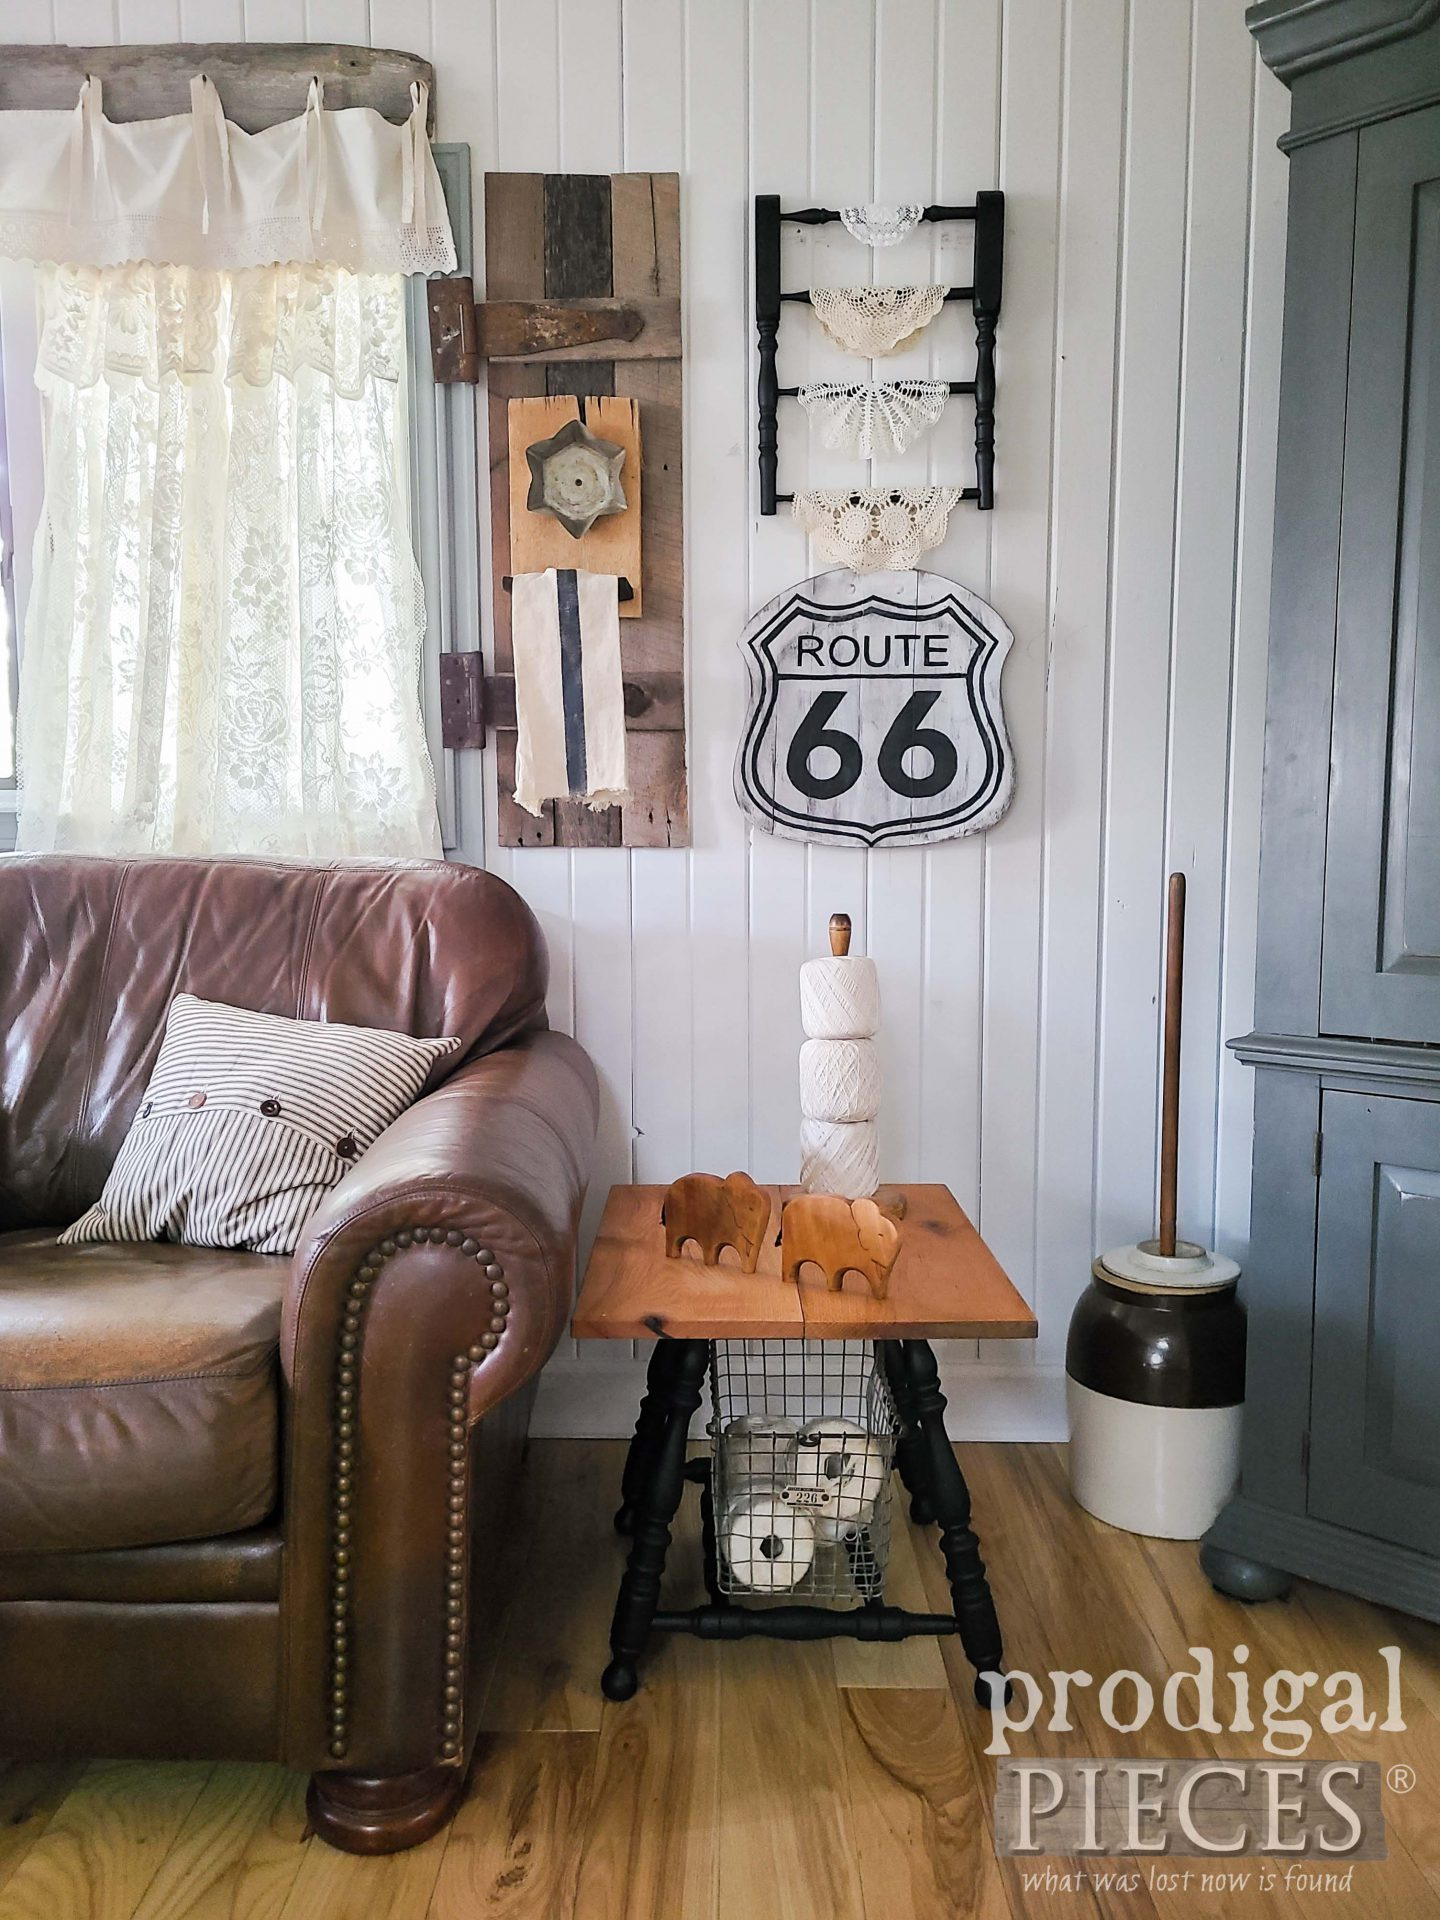 Upcycled Farmhouse Decor from a Broken Chair by Larissa of Prodigal Pieces | prodigalpieces.com #prodigalpieces #farmhouse #home #diy #upcycled #homedecor